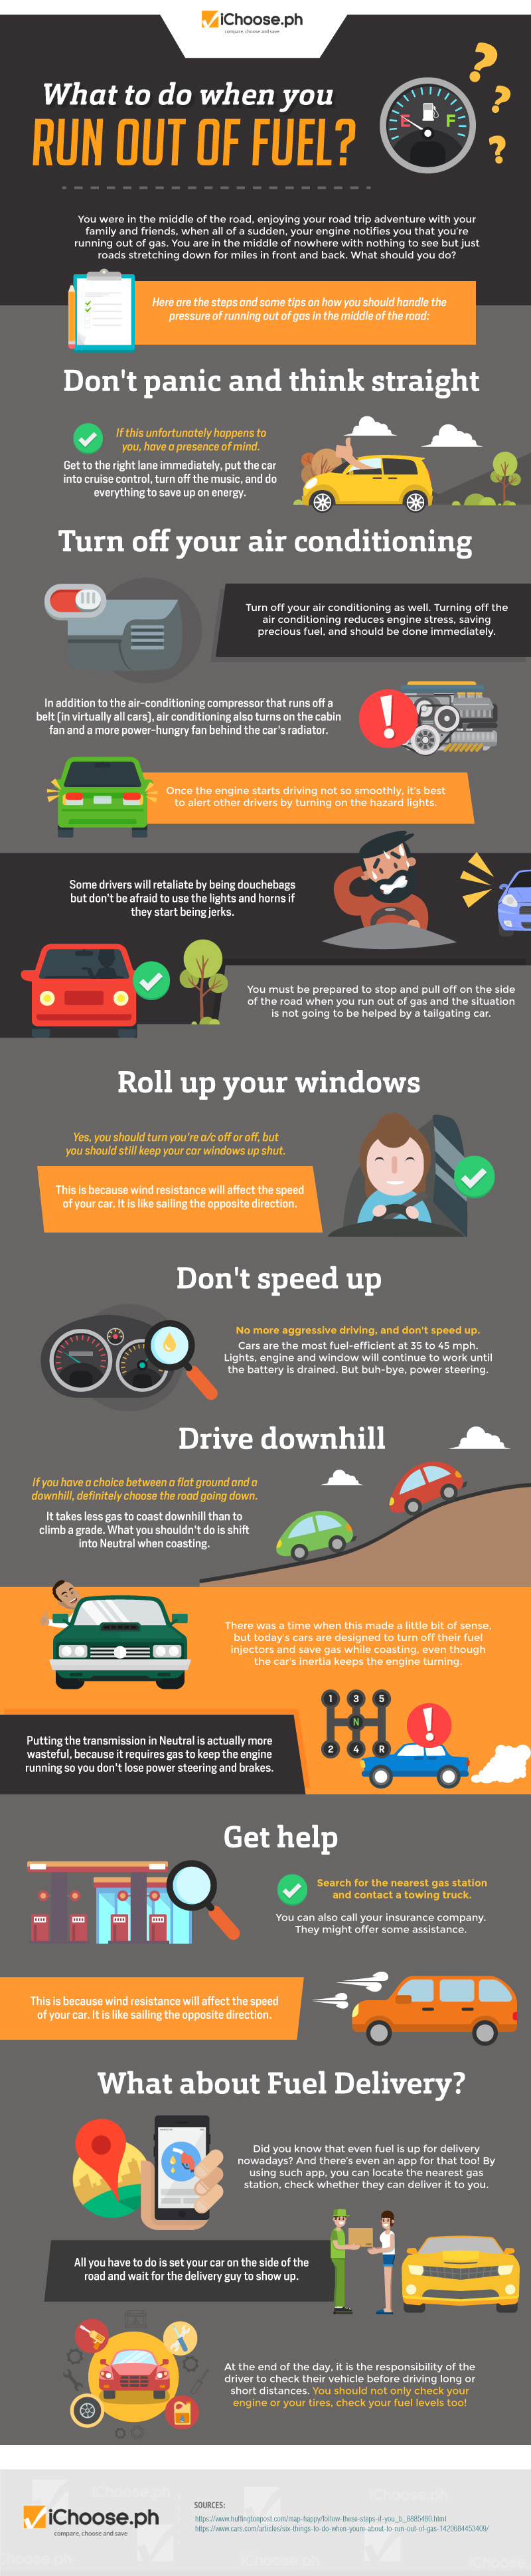 What to Do When You Run Out of Fuel? [Infographic]